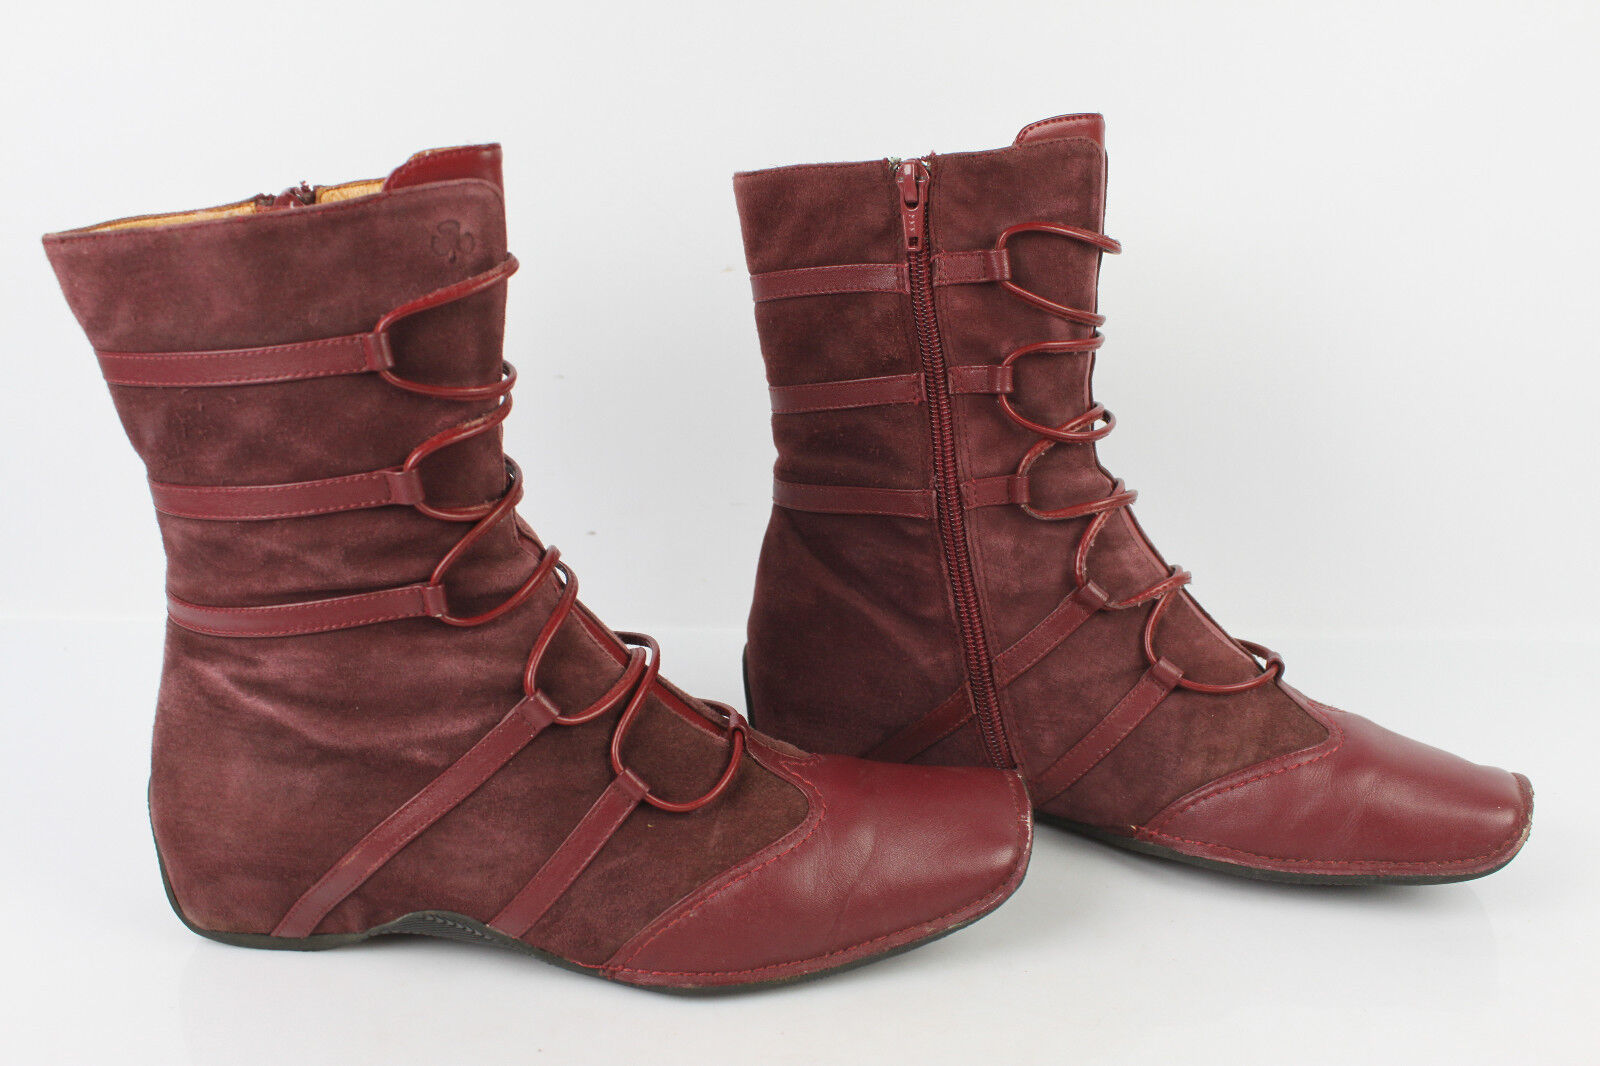 Boots KARSTON Leather and Suede Raspberry T 39 VERY GOOD CONDITION